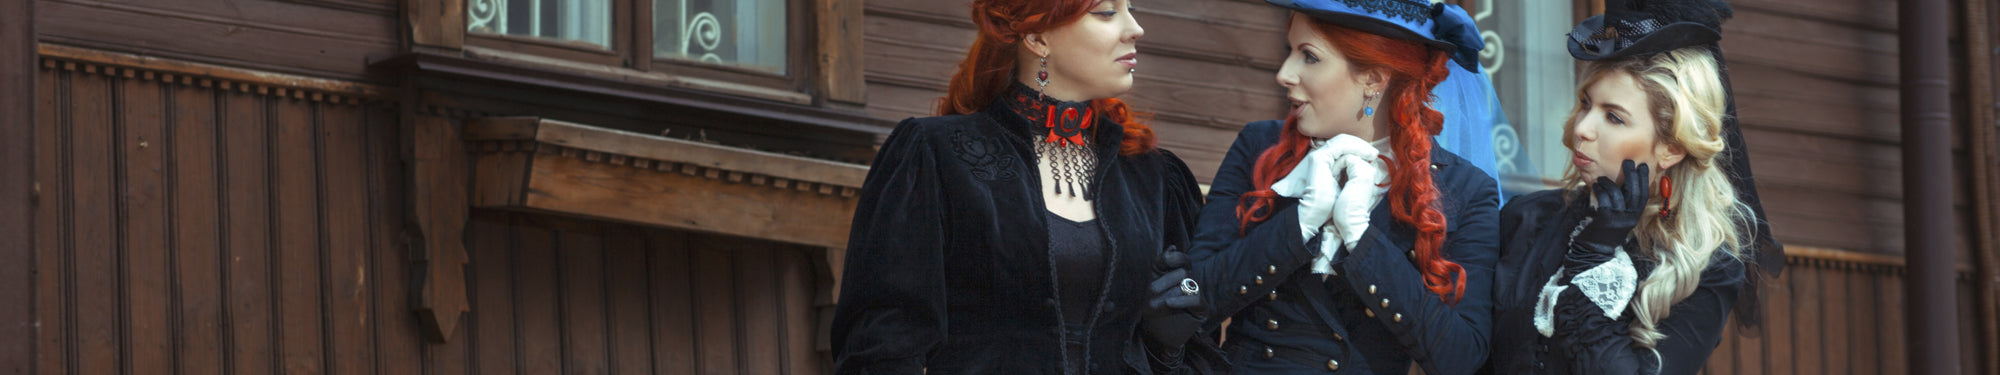 Steampunk Top & Steampunk jackets. Collection of Victorian Shirts, T-Shirts, Bolero's, Shrugs and Jackets are available here.